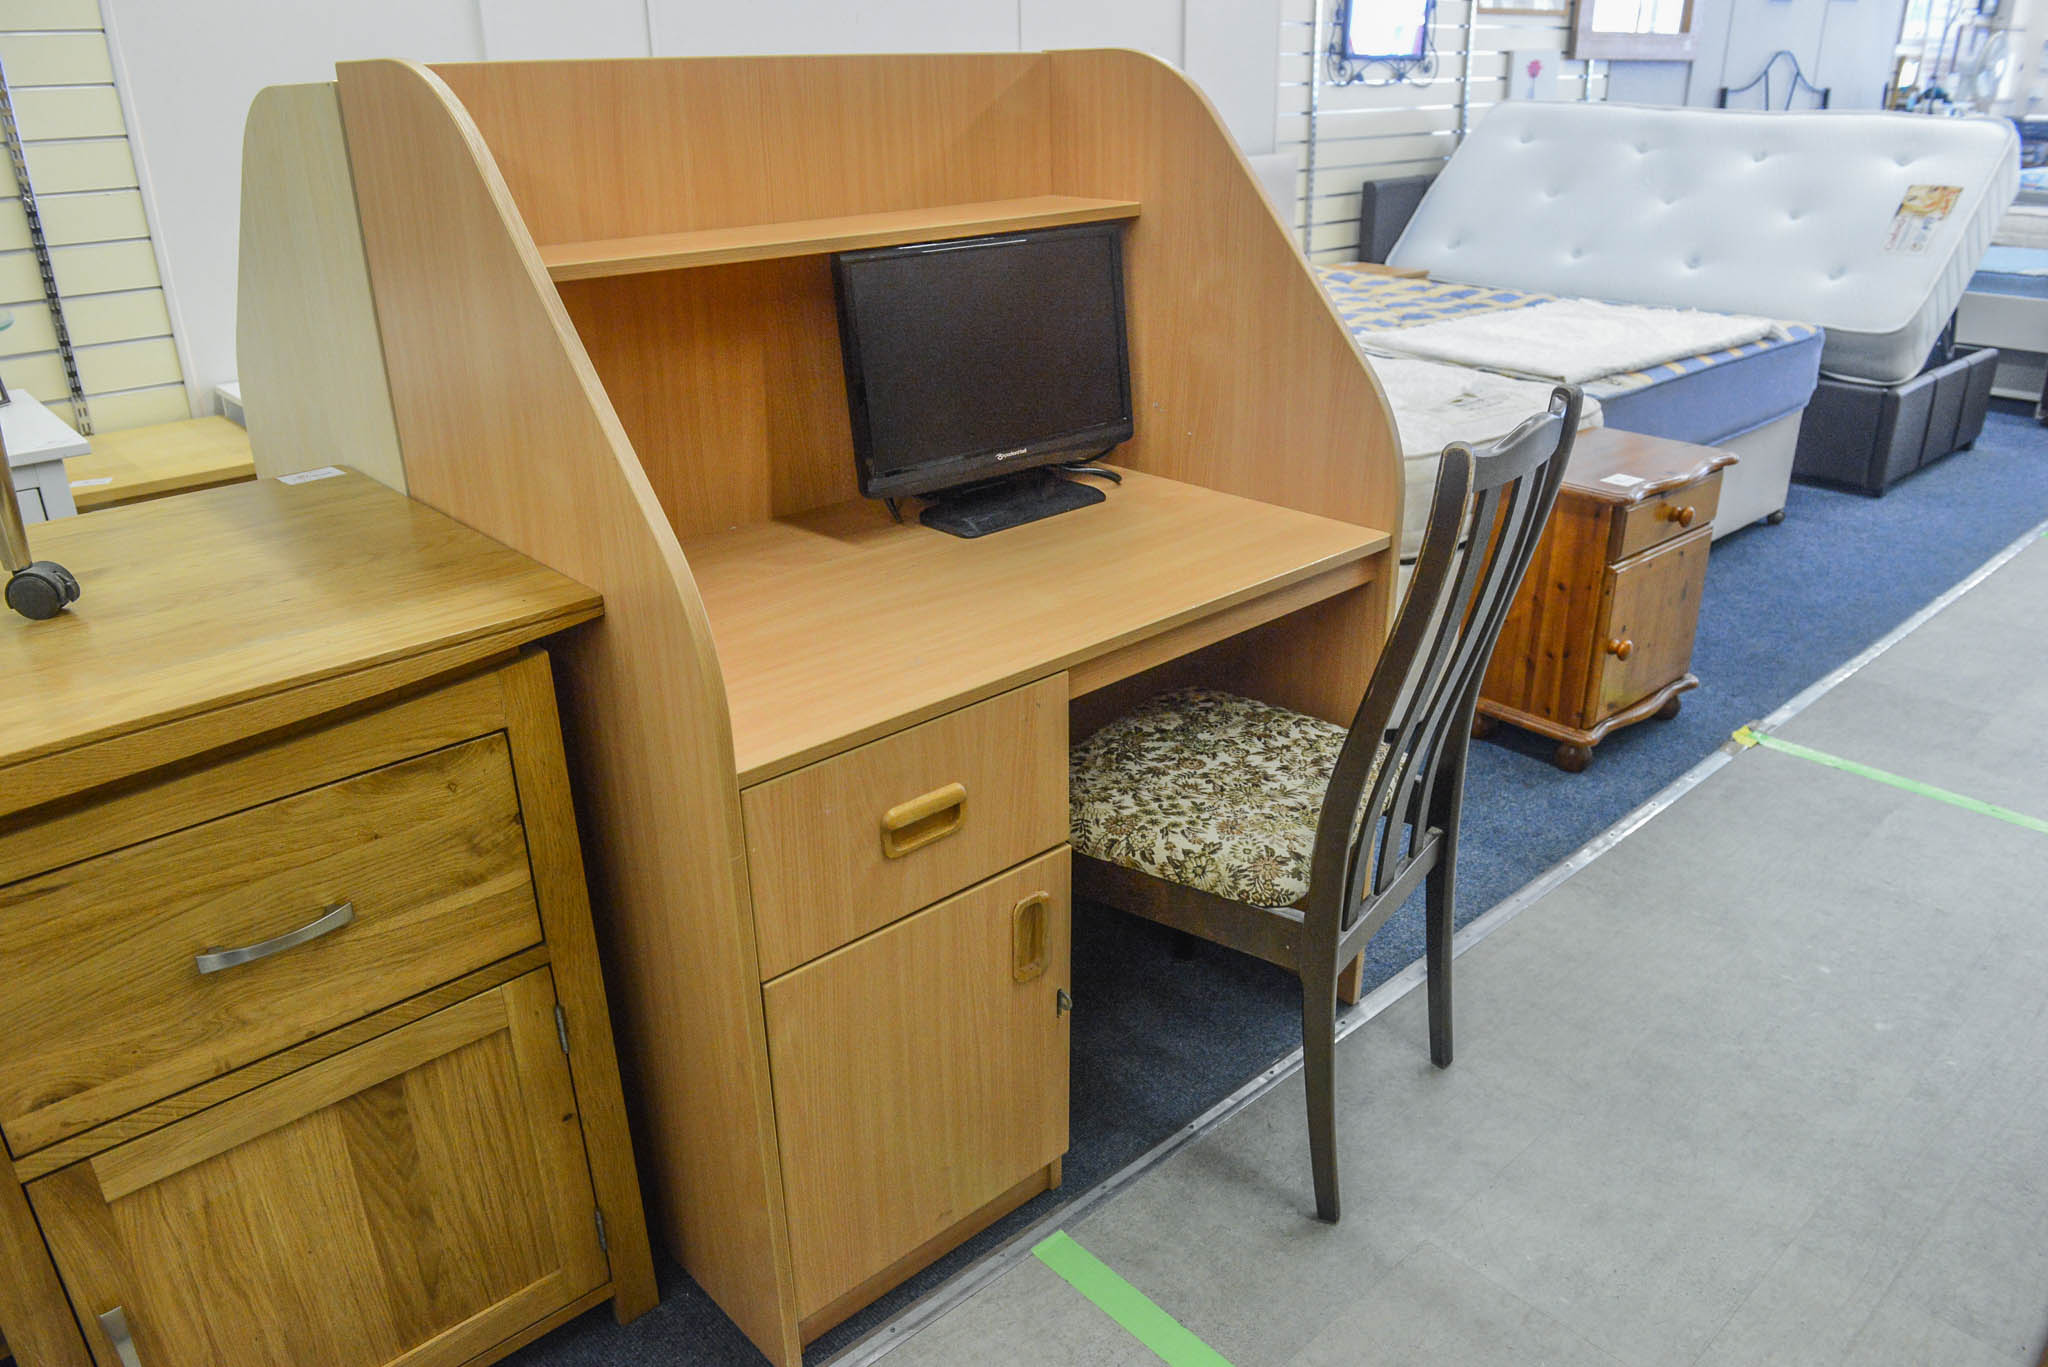 Workstation Desk with fixed pedestal. 1m wide, 65cm deep, 1.28m tall.